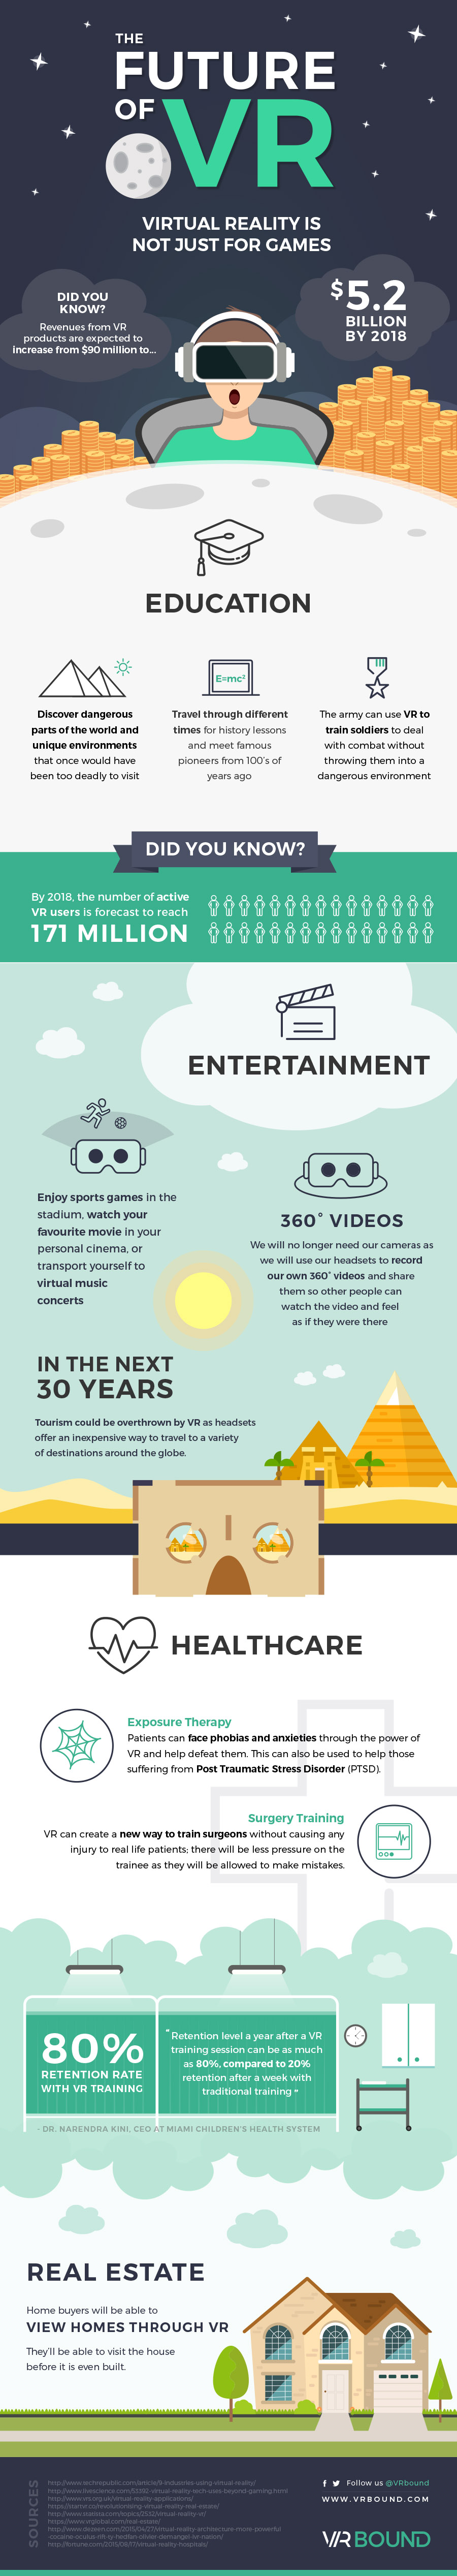 The Future of VR Infographic by VR Bound